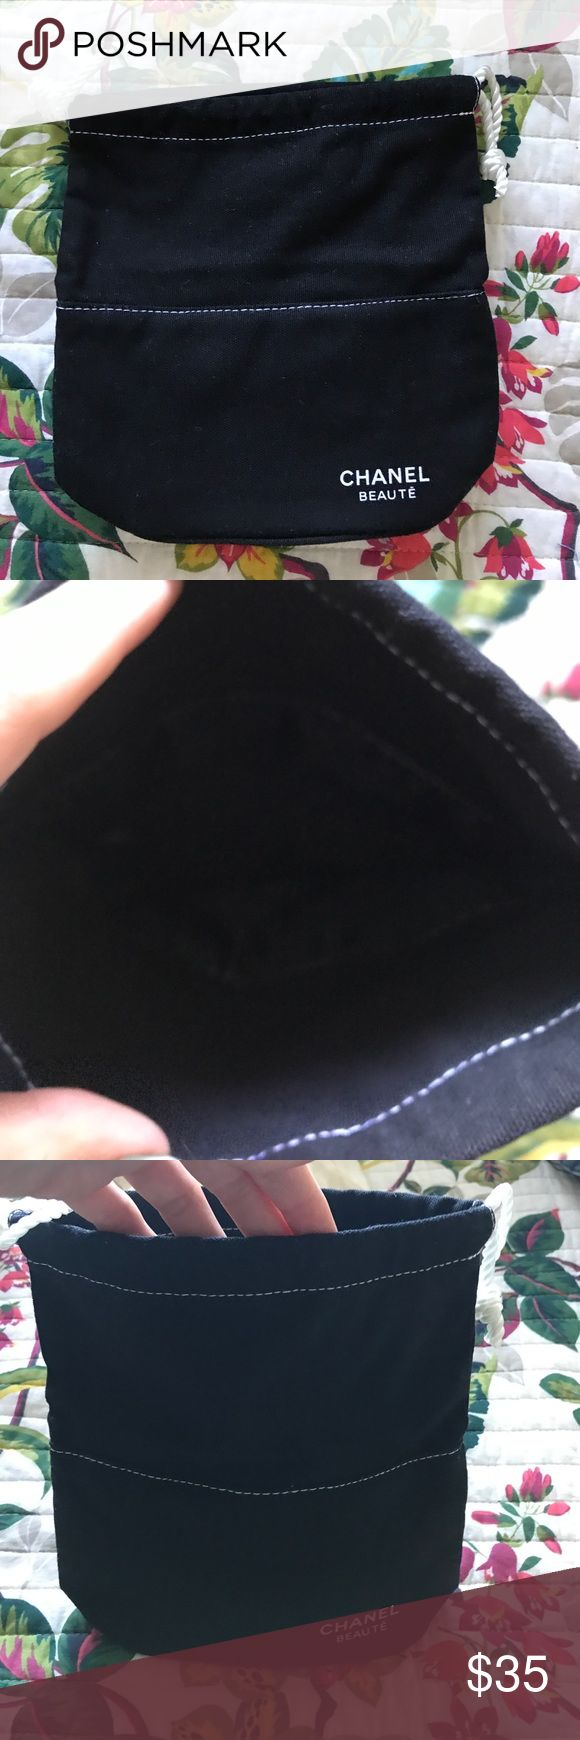 New Chanel makeup bag New Chanel makeup bag CHANEL Bags Cosmetic Bags & Cases